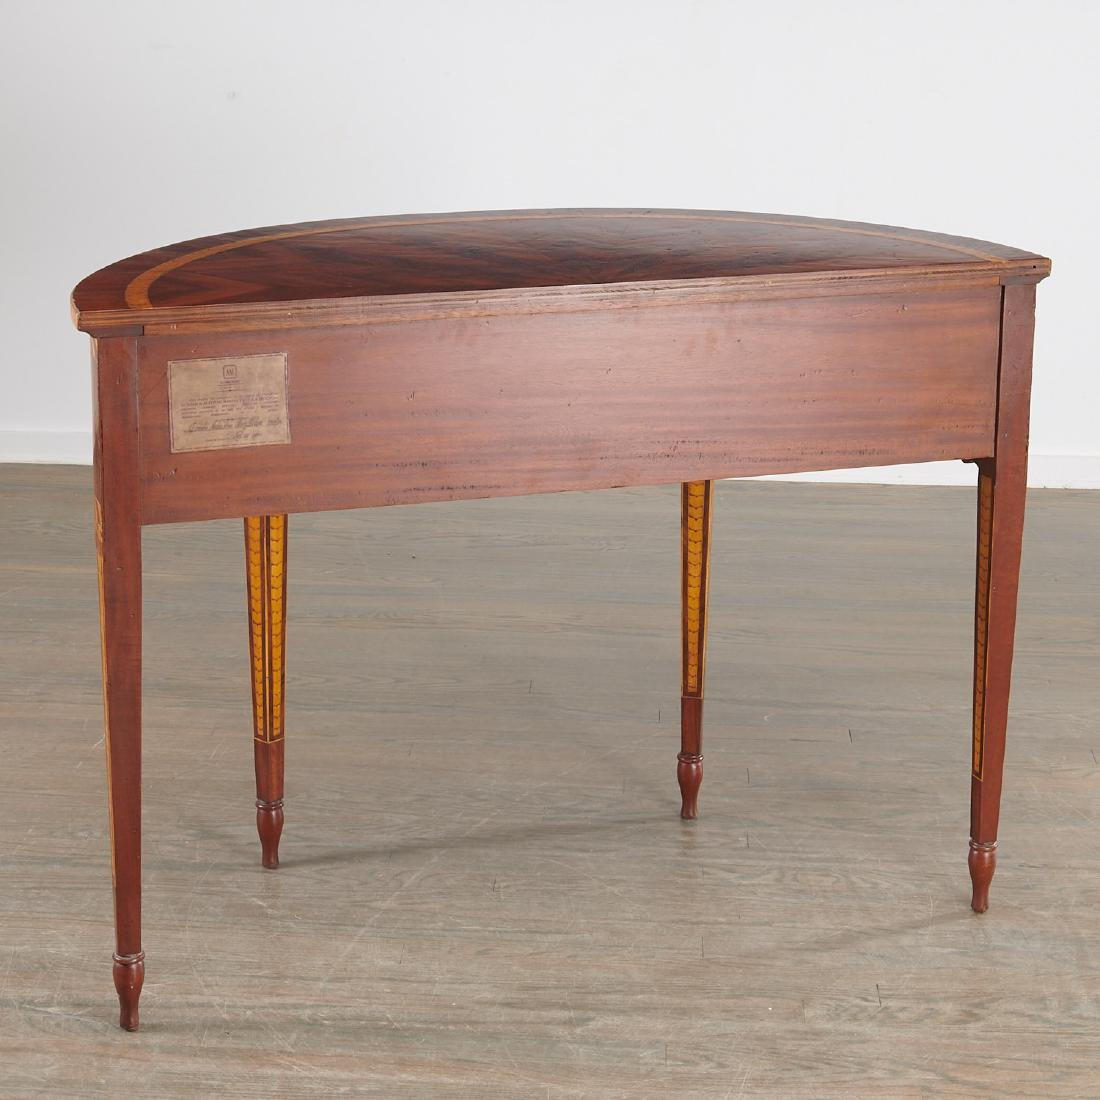 Alfonso Marina parquetry demilune table - 8